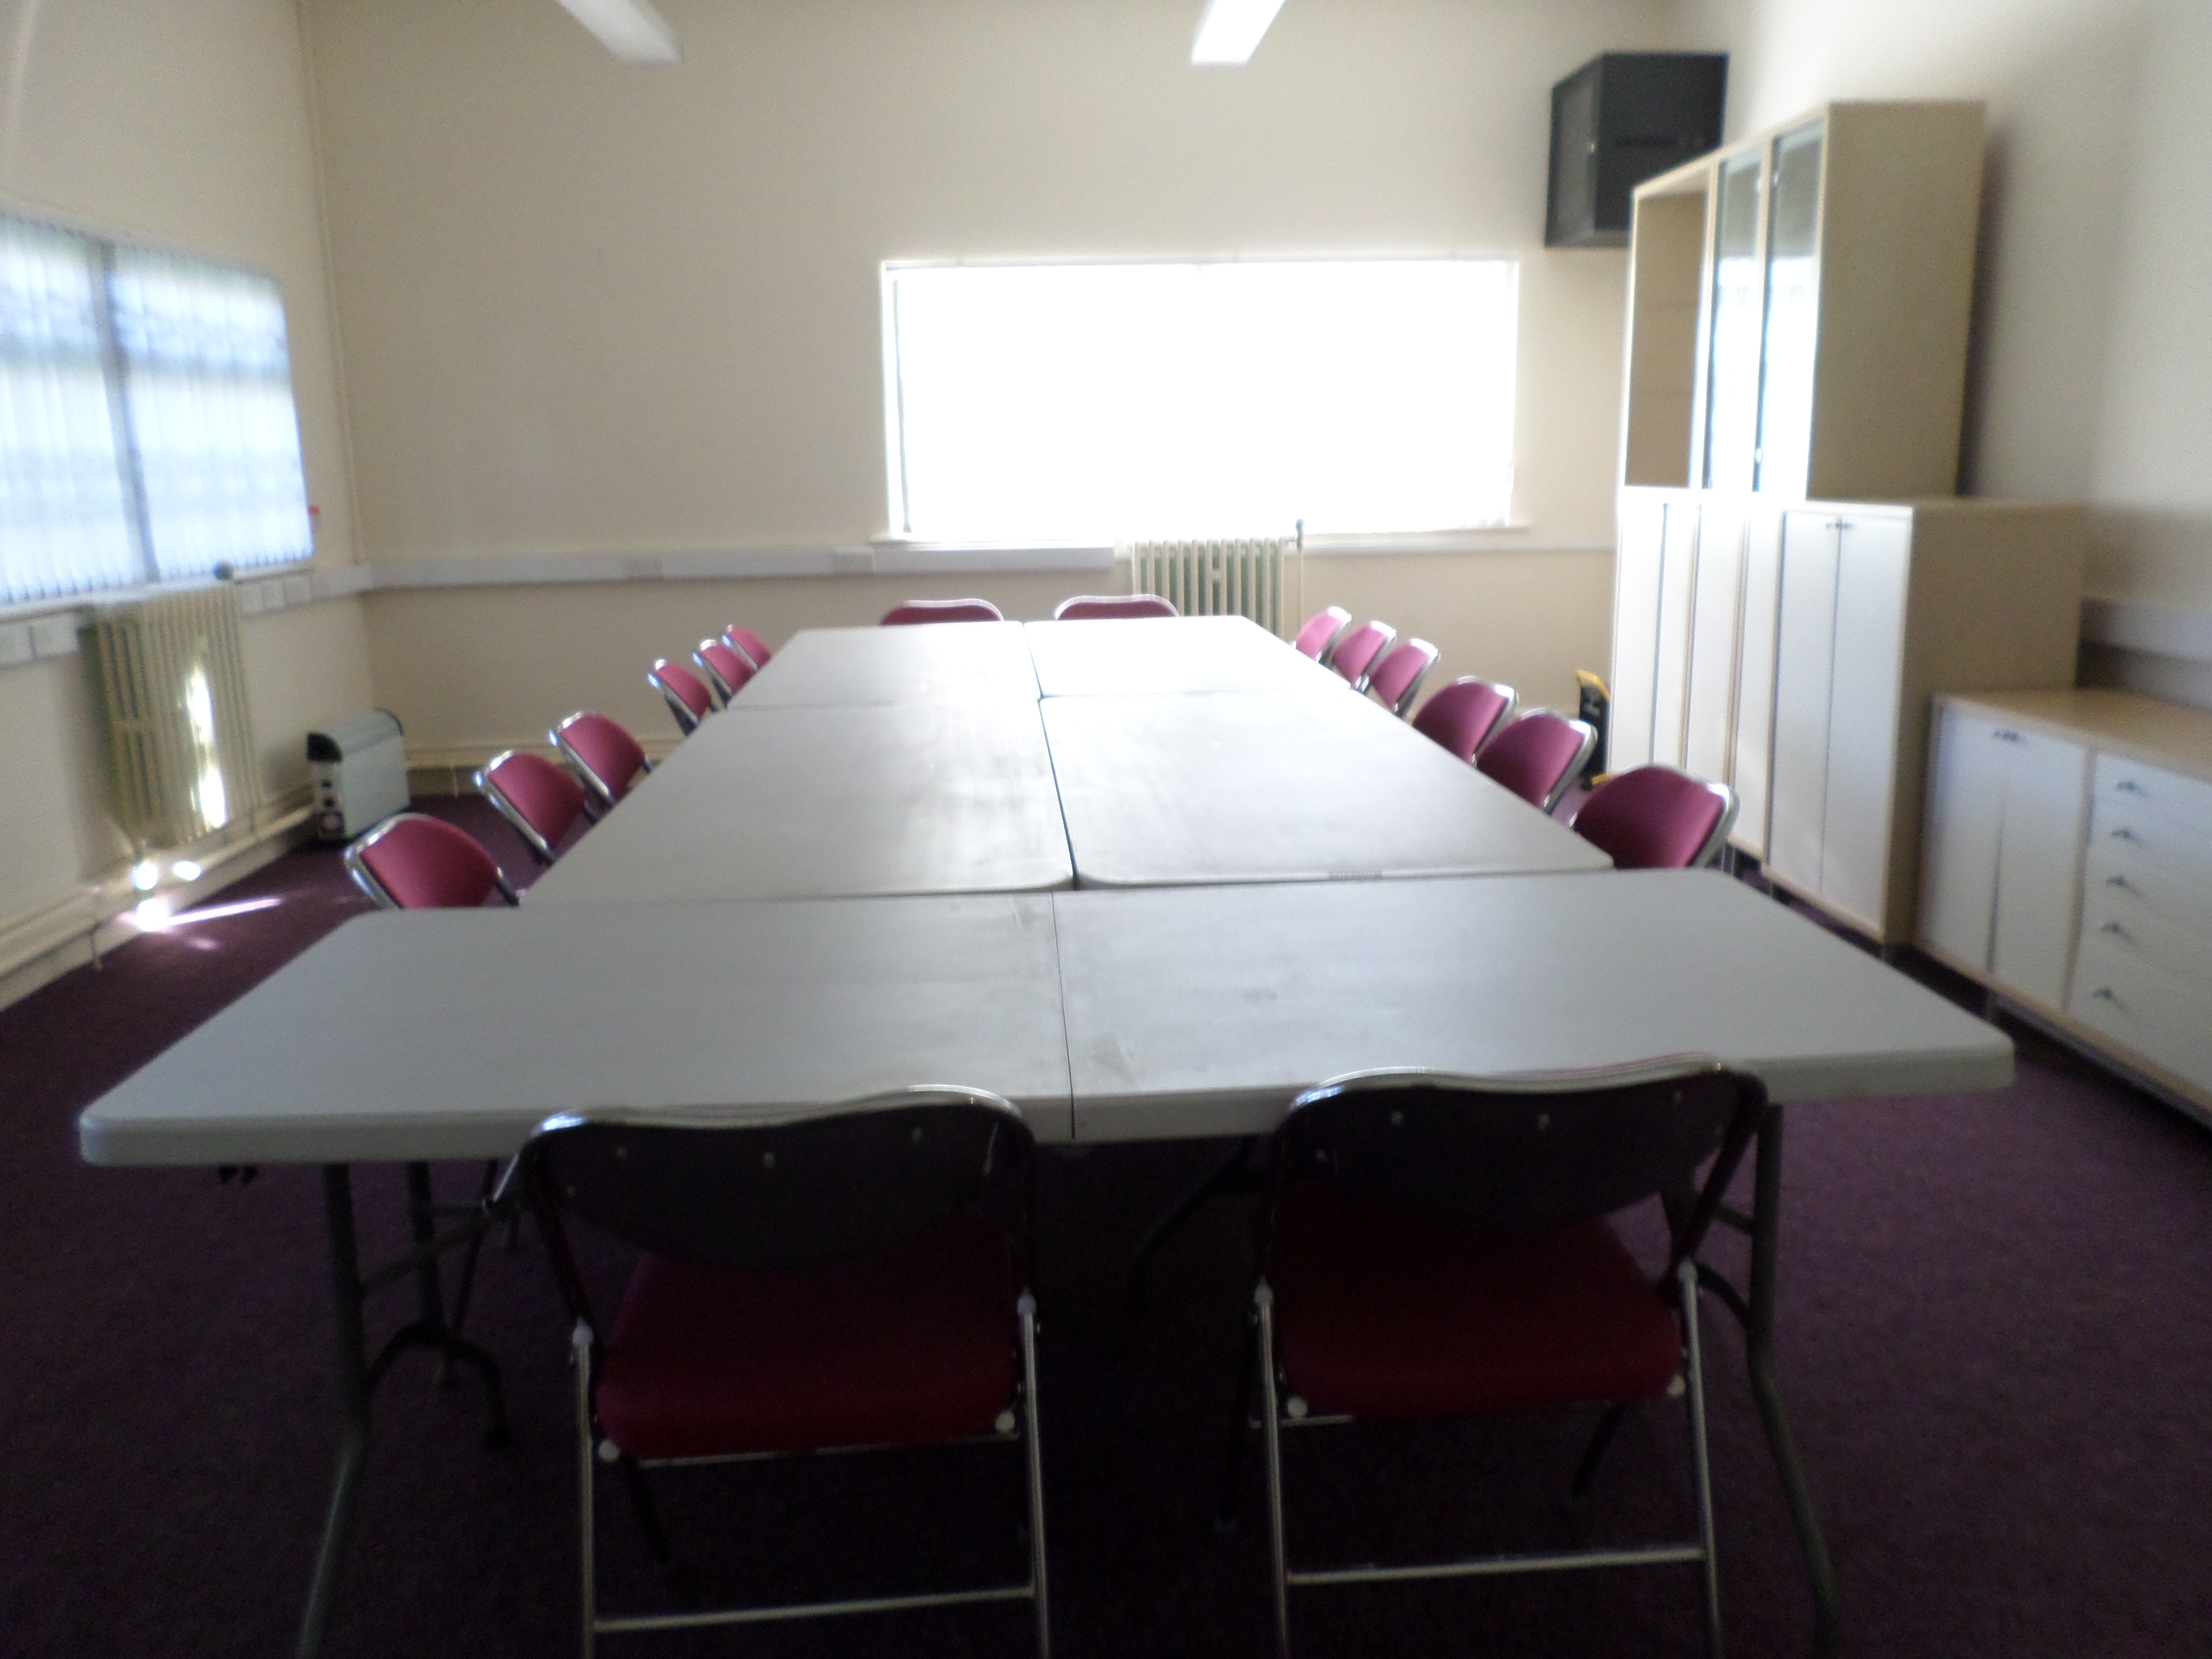 Conference Room - 1 Hour